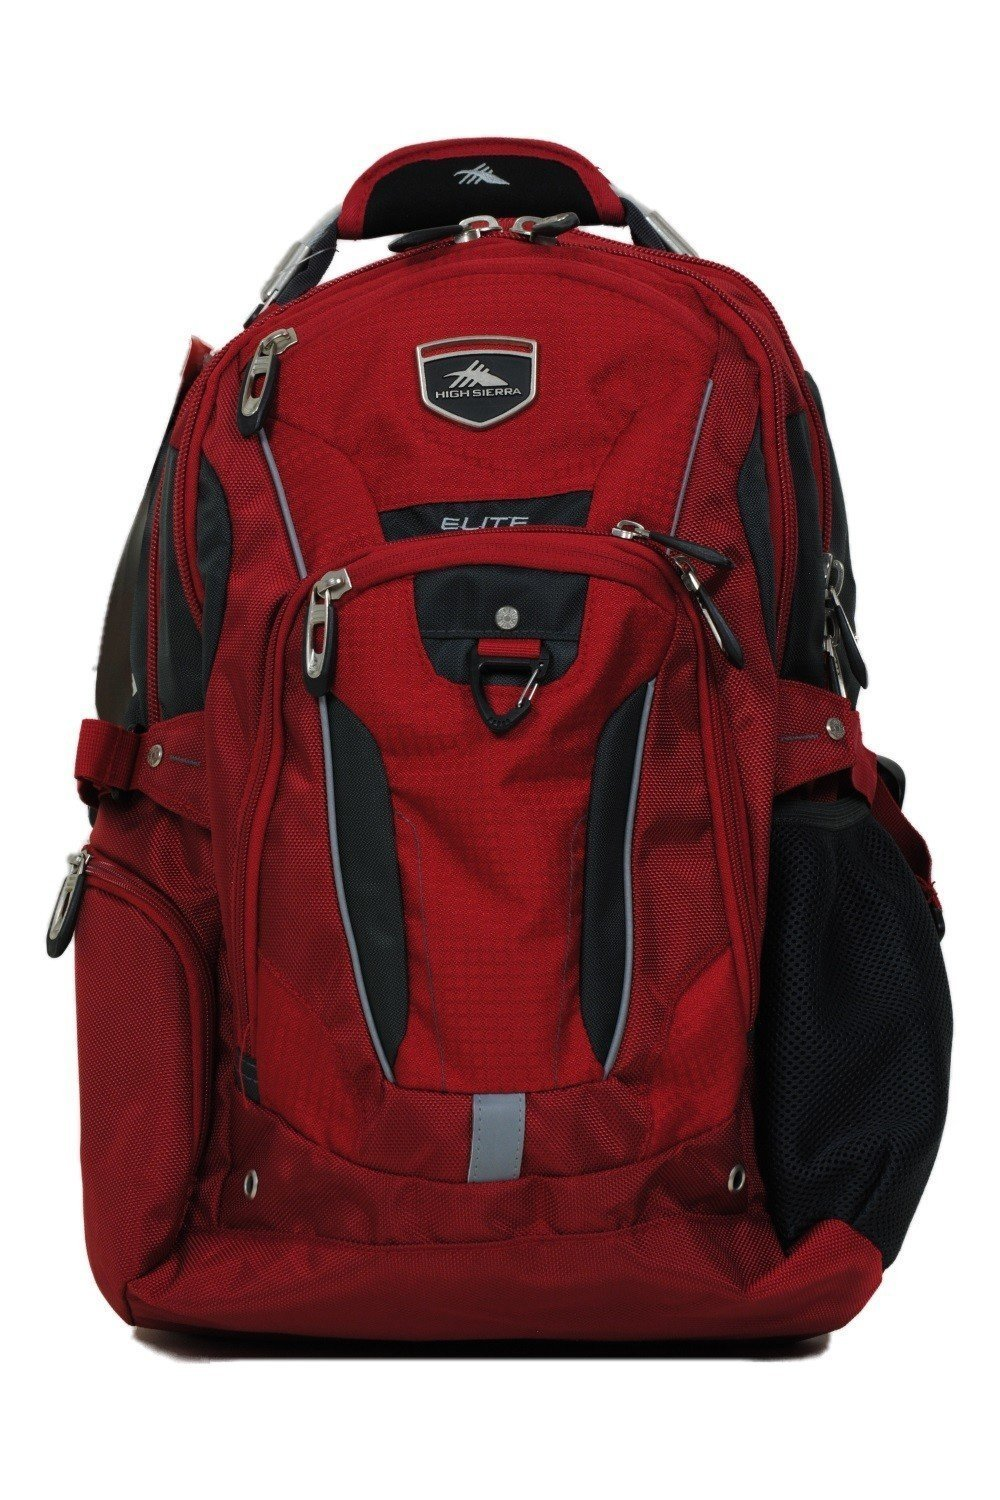 High Sierra Business Elite Backpack Red Fits 17'' Laptop with Tablet Storage & Suspended Back Panel